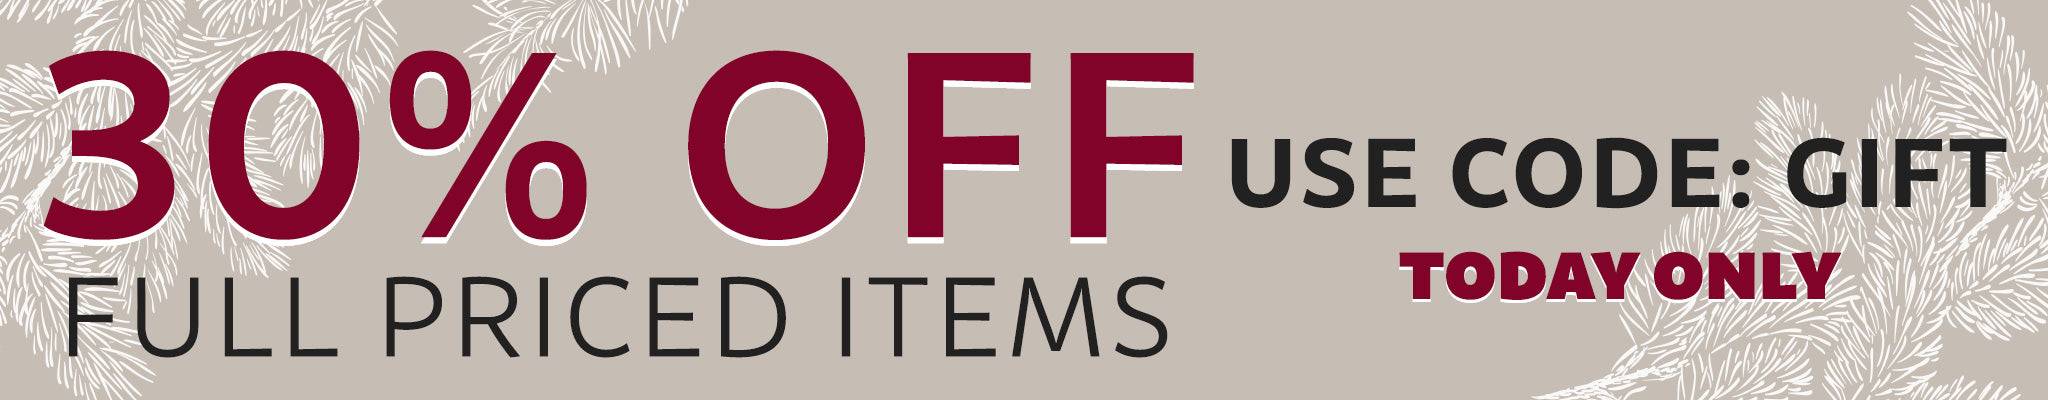 30% OFF Full Priced Items   Code: GIFT